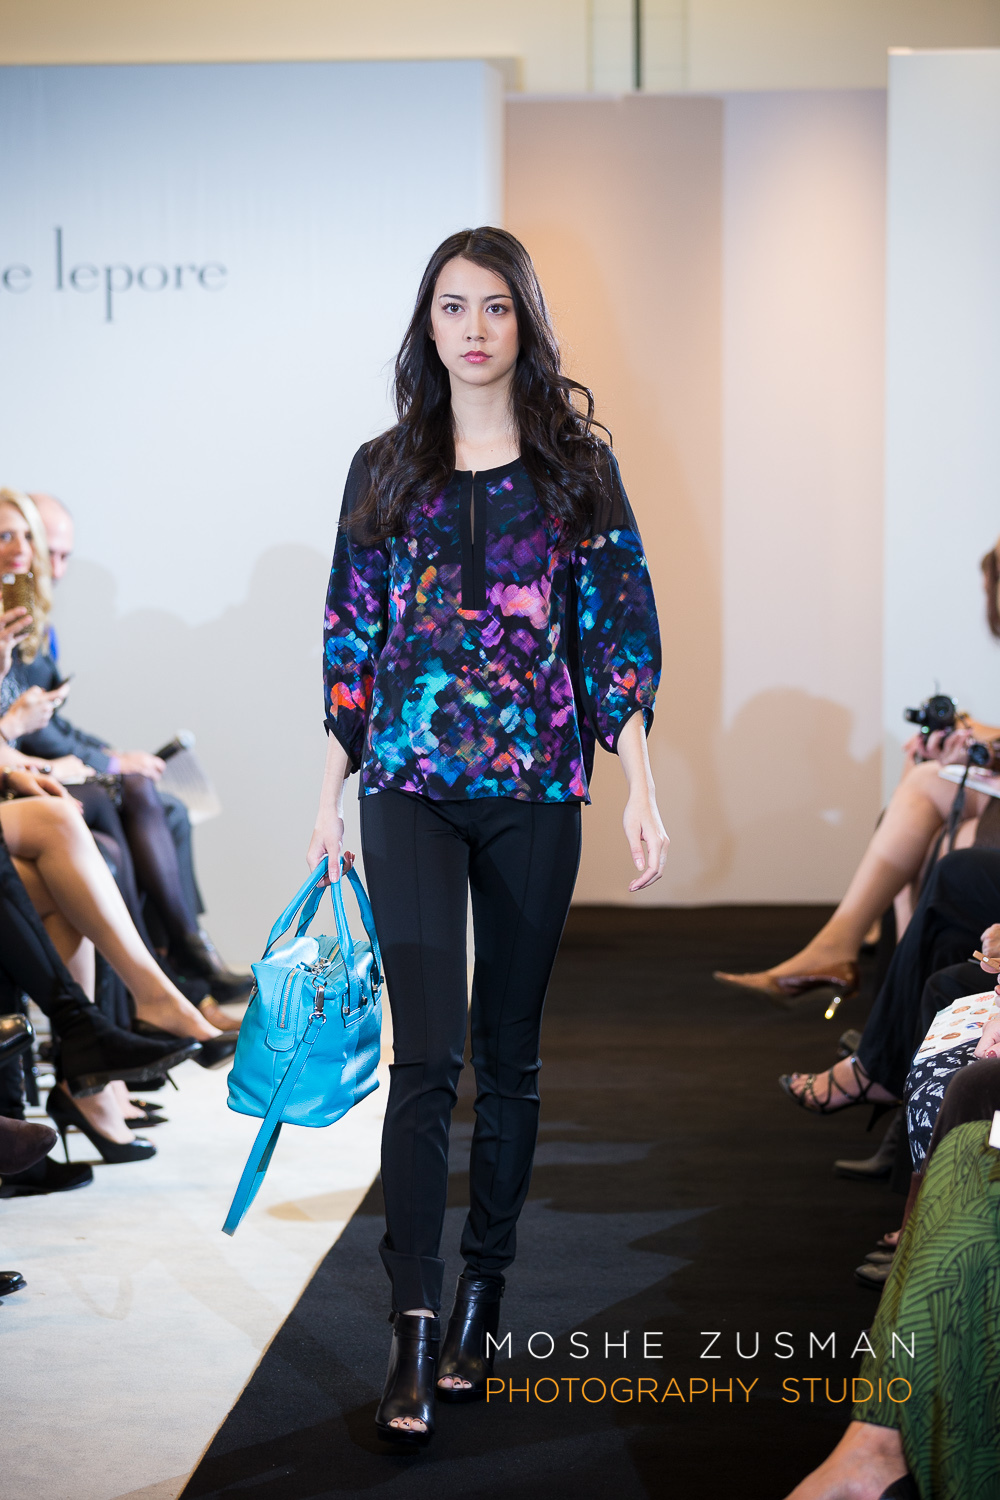 Nanette-Lepore-Saks-Fifth-Avenue-Fashion-Show-Moshe-Zusman-Photography-18.jpg